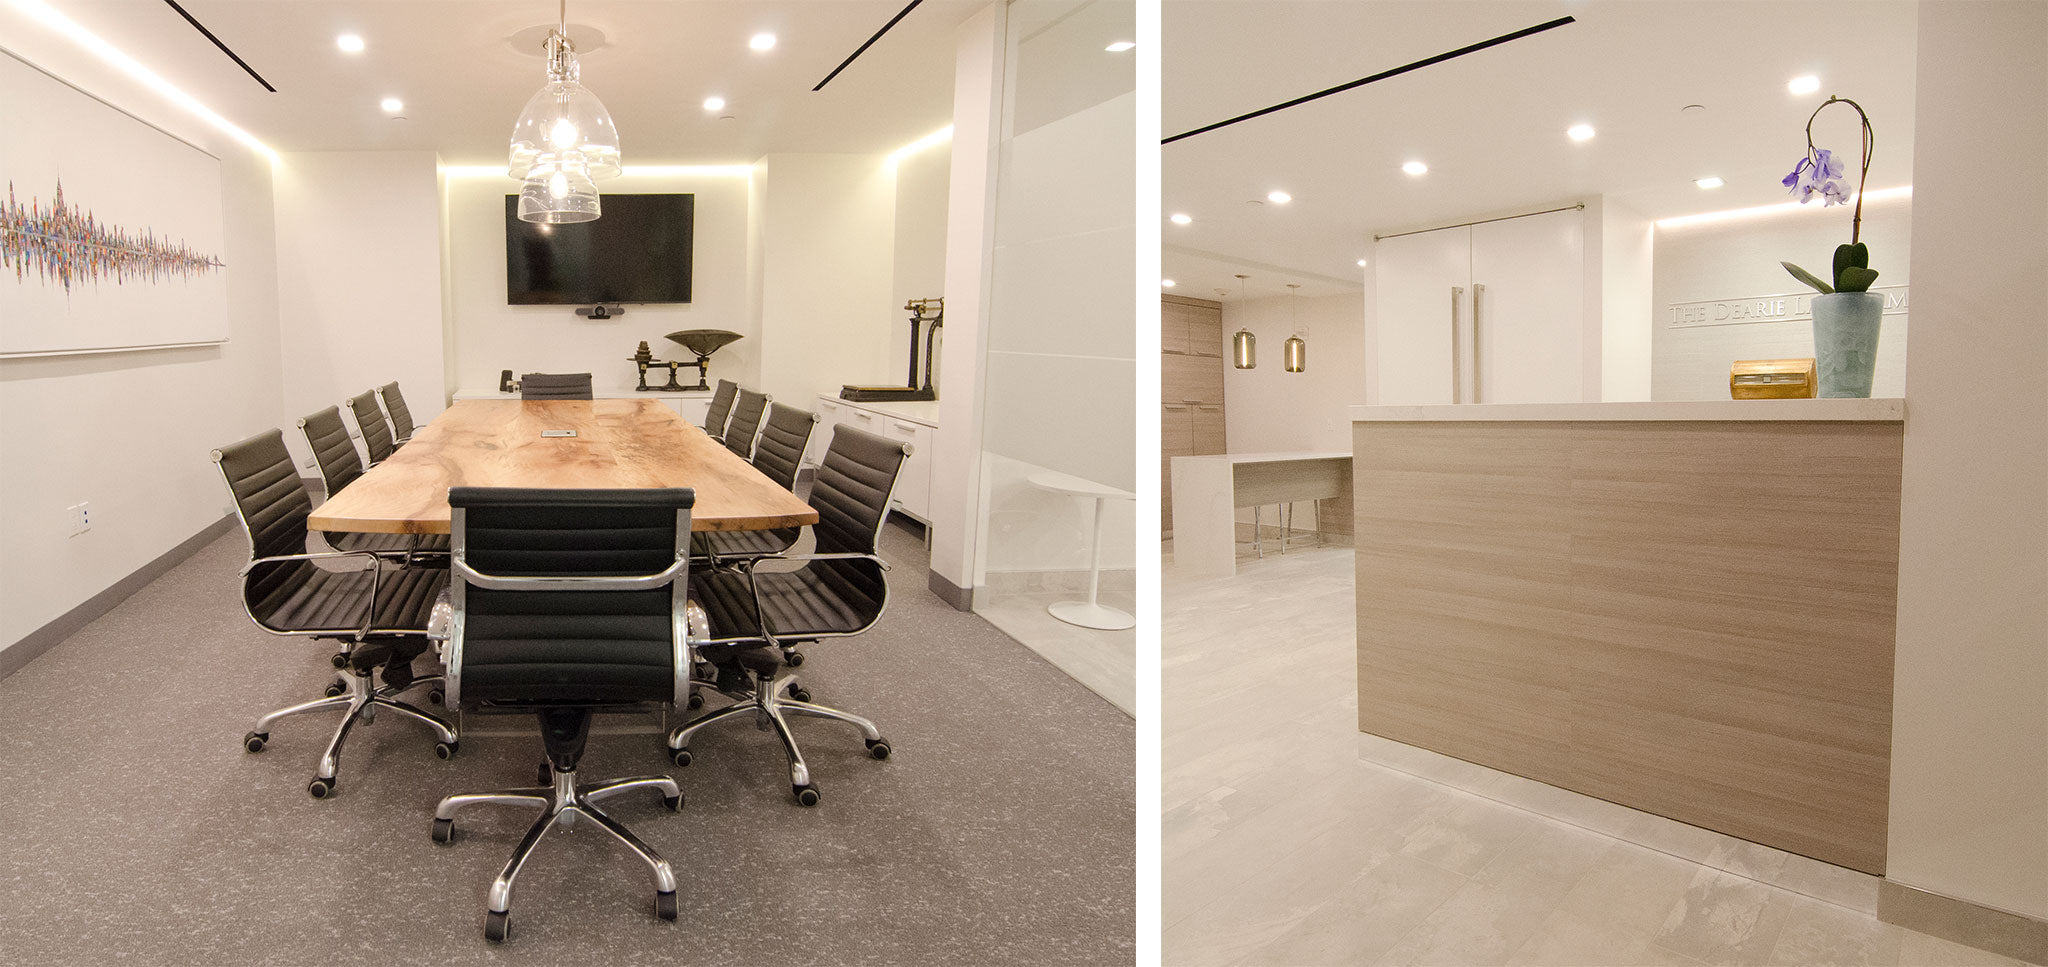 OFH Office Design Project - The Dearie Law Firm